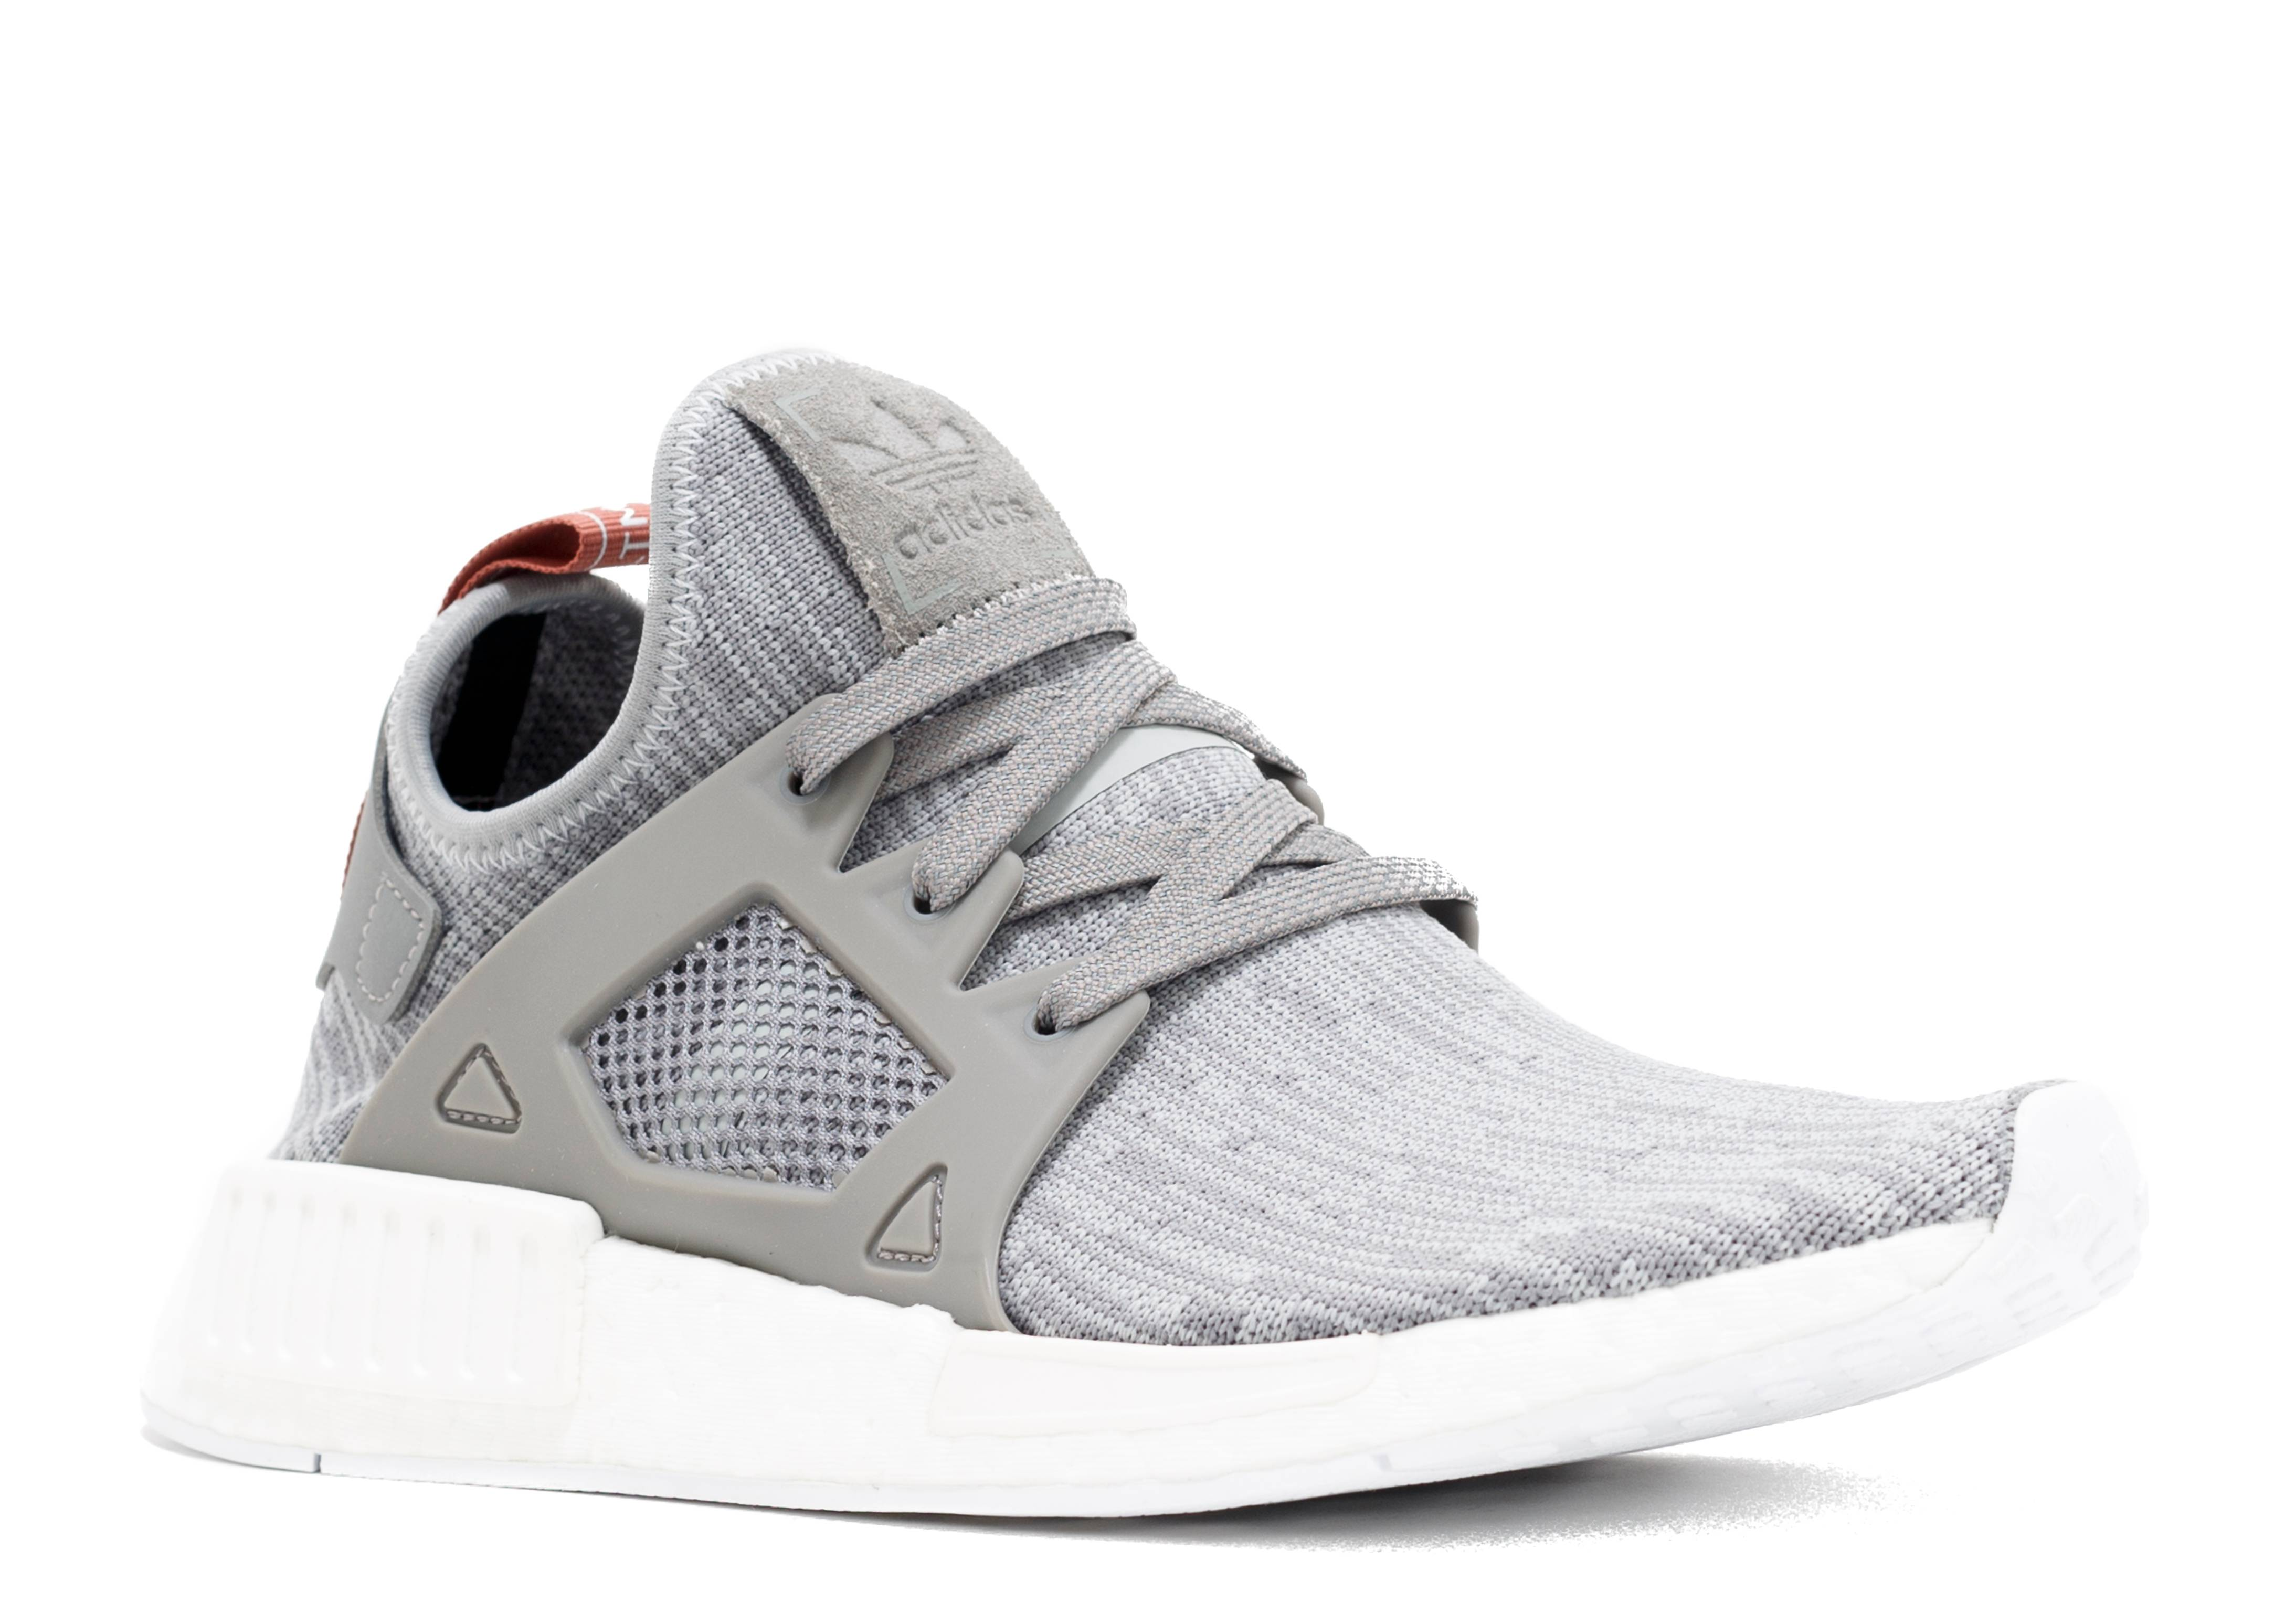 Adidas NMD XR1 OG Black Blue Red Real Boost Review: Topkickss